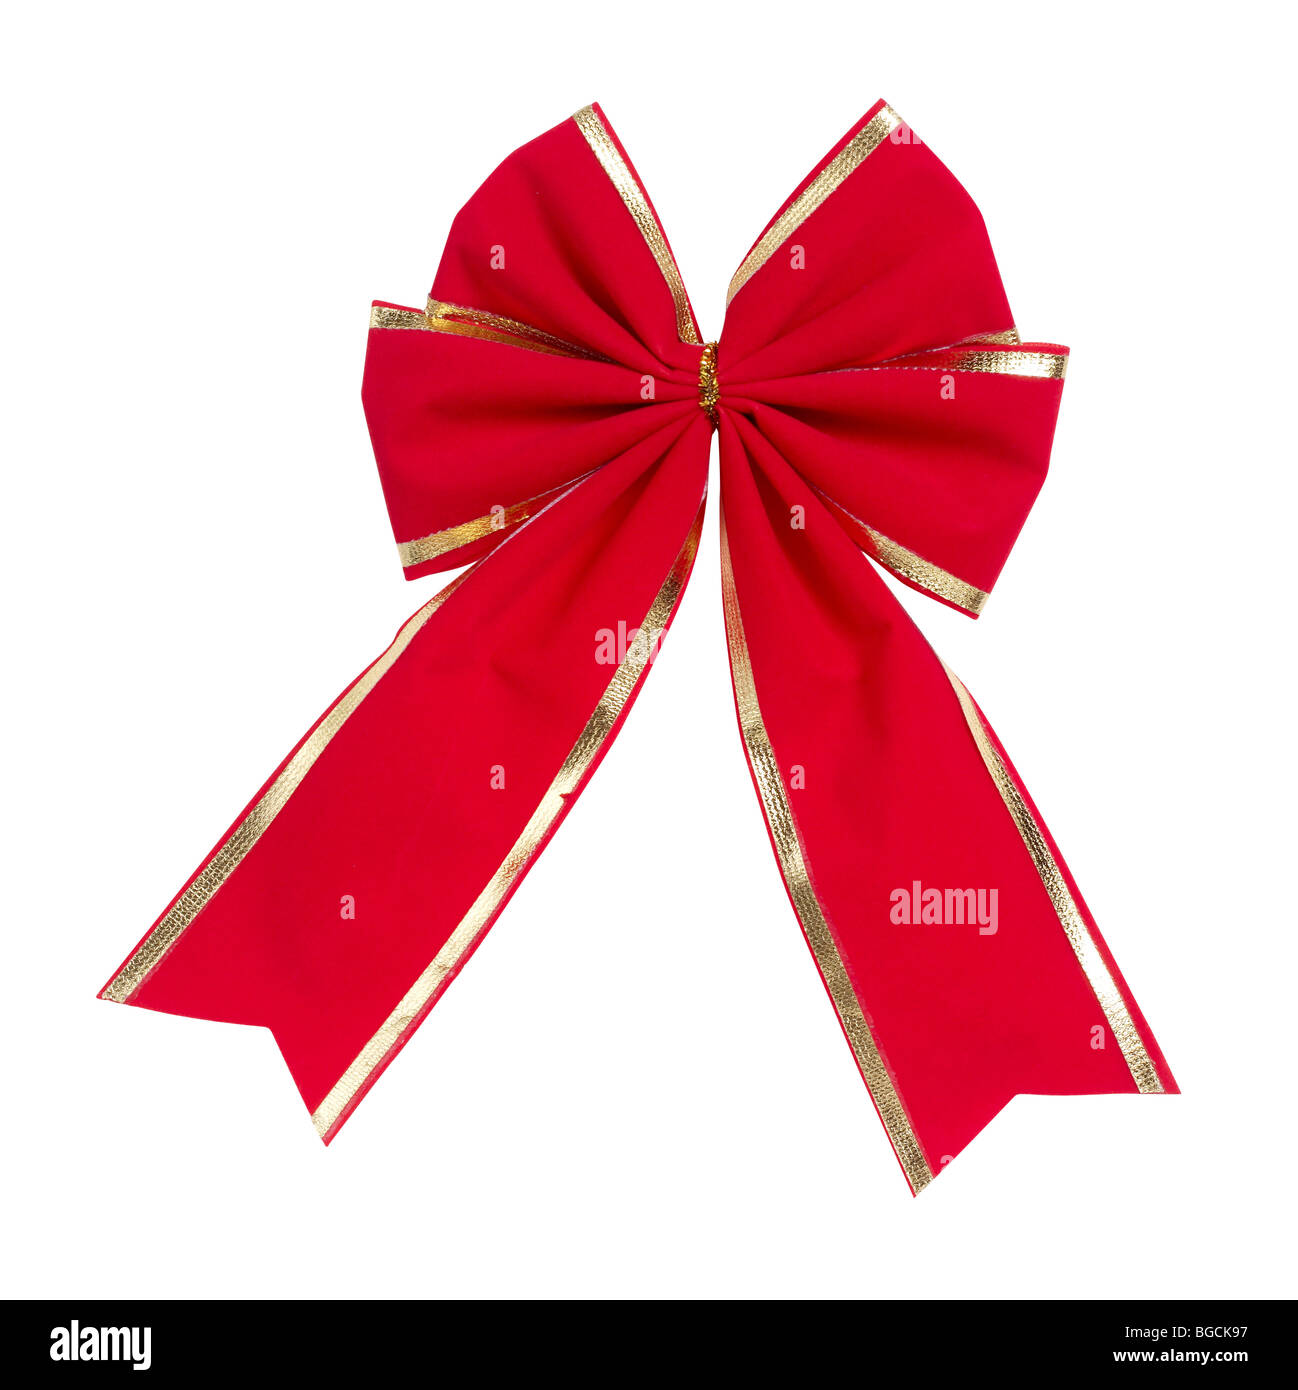 Red and Gold Bow - Stock Image